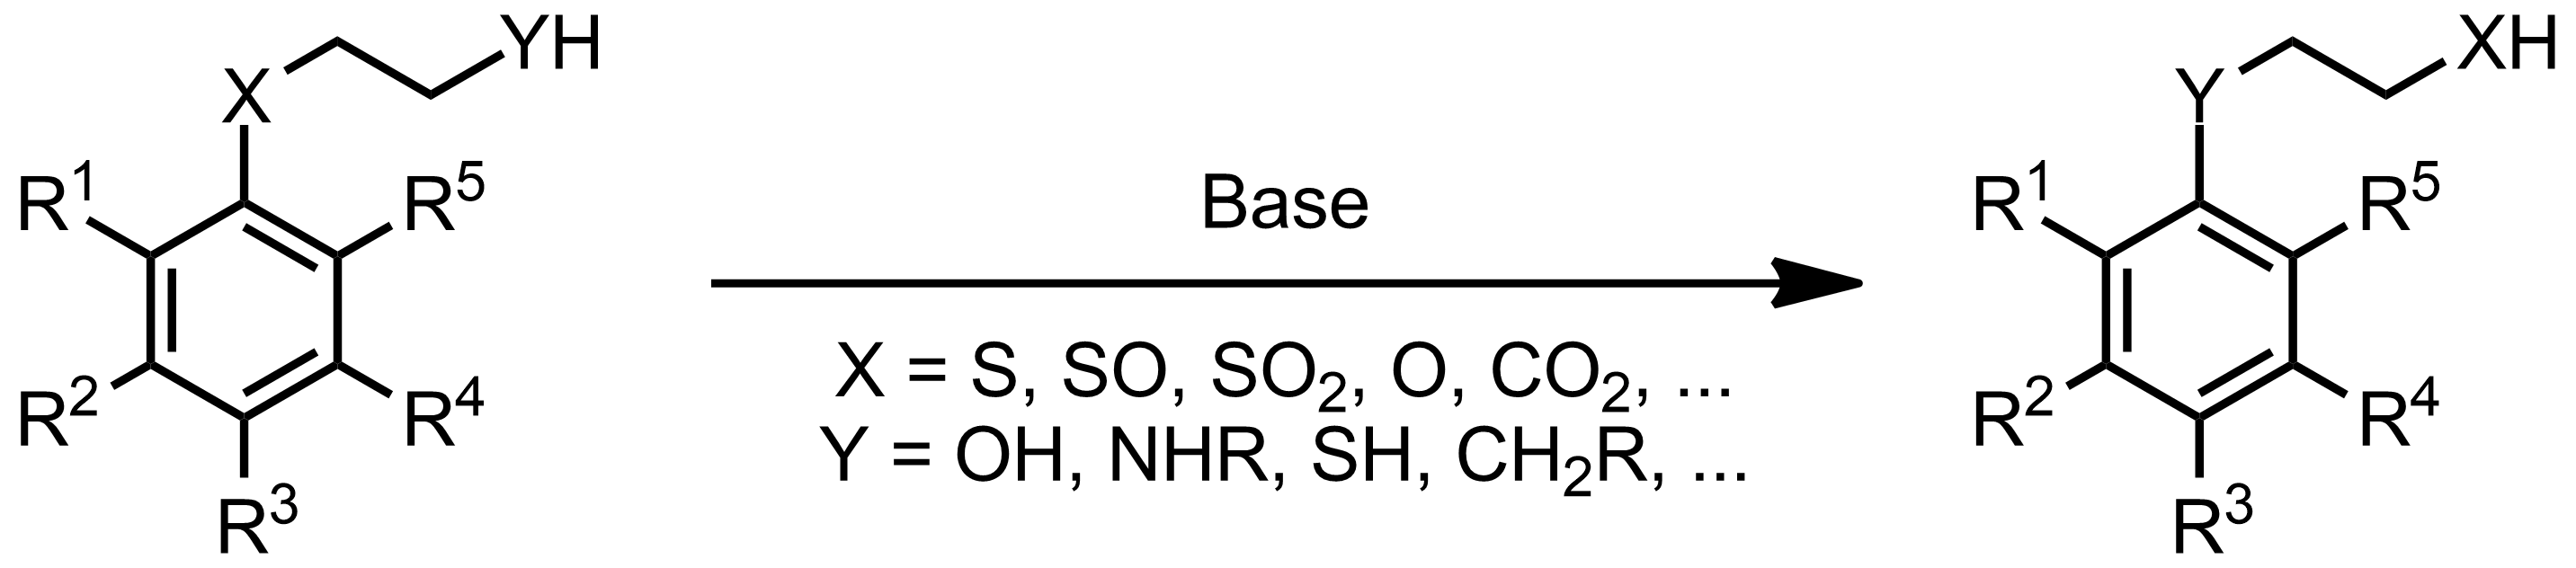 Schematic representation of the Smiles Rearrangement.